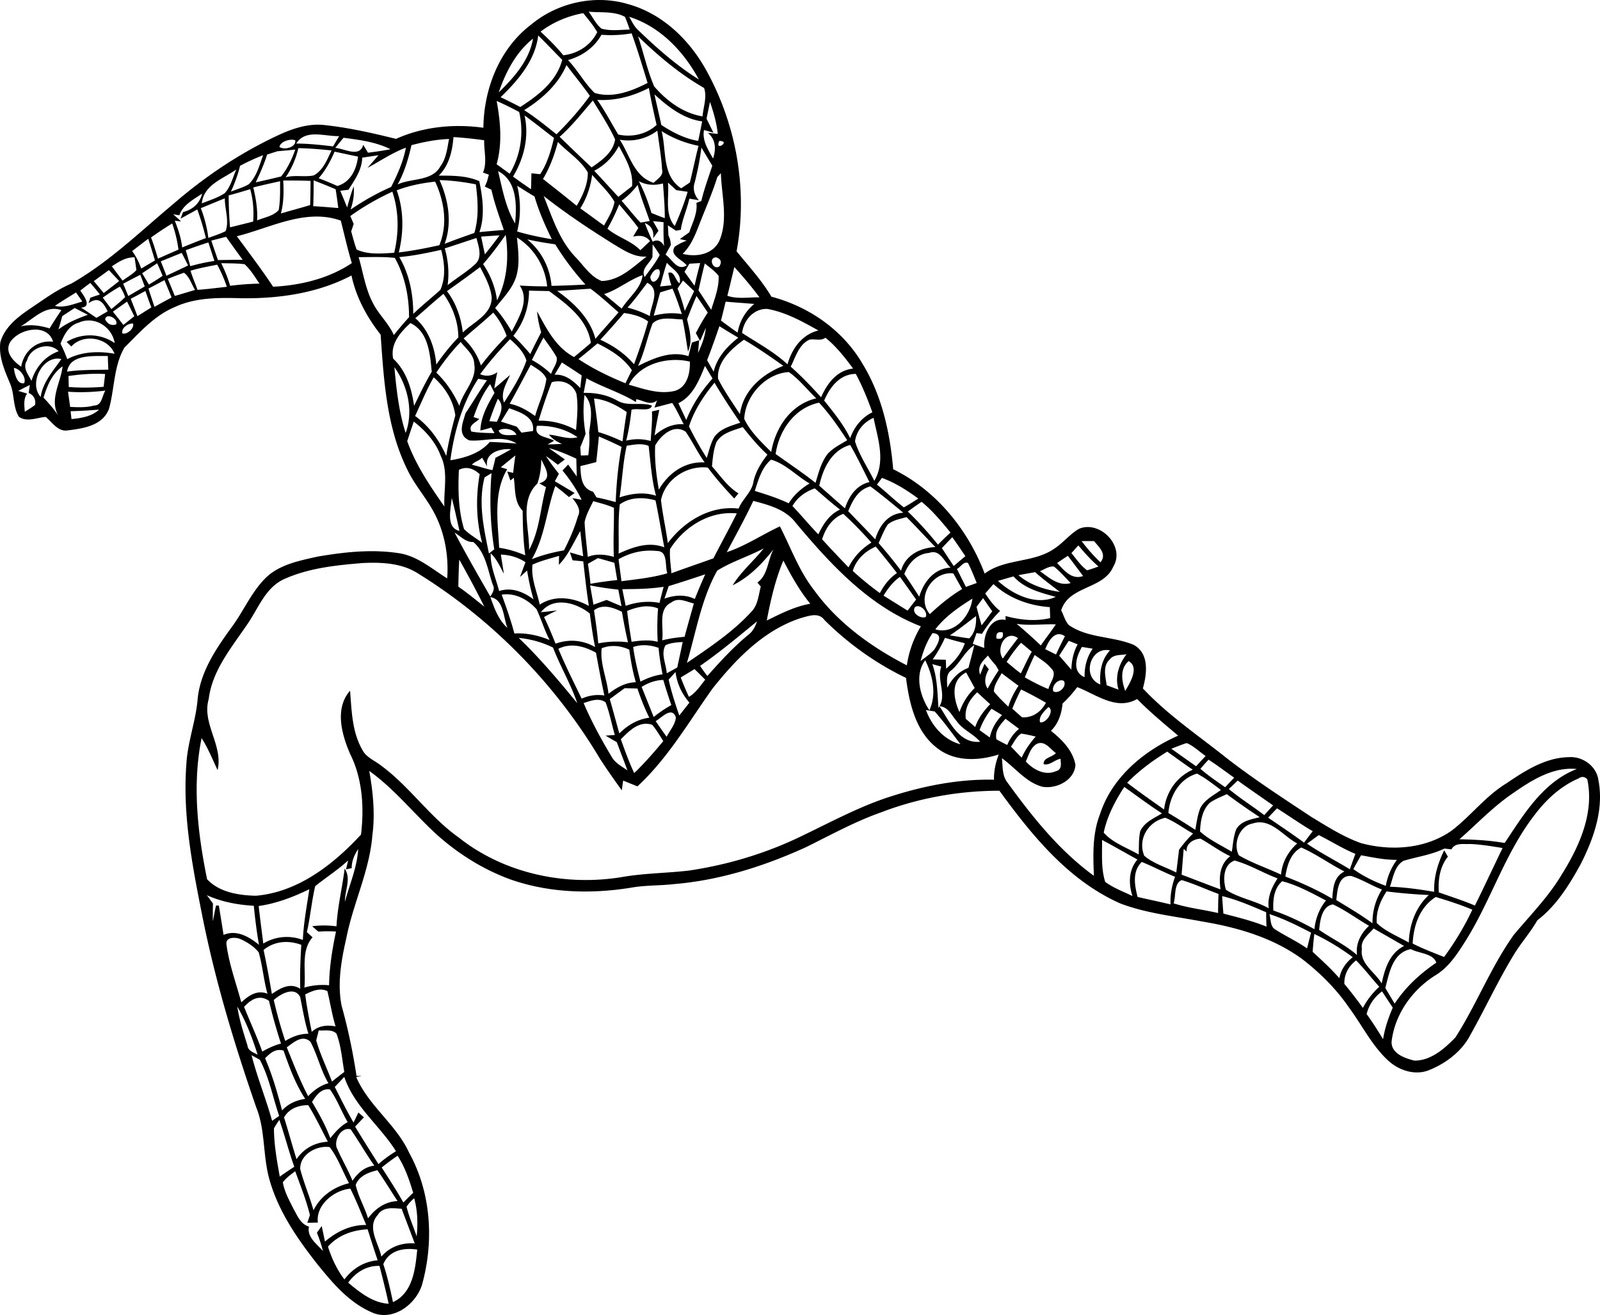 Coloring Pages Spiderman Printable Coloring Pages free printable spiderman coloring pages for kids printable